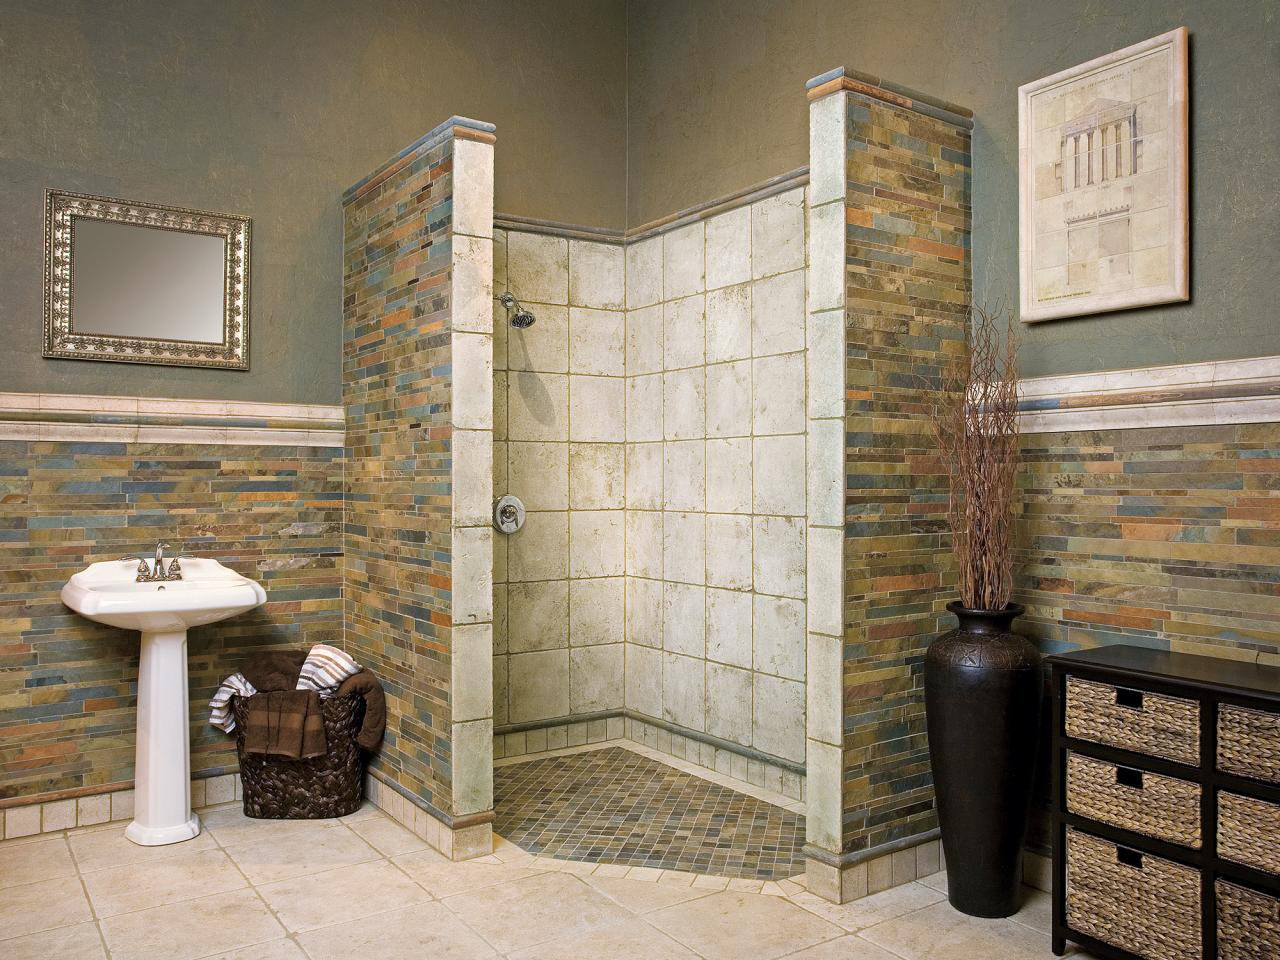 Bathroom remodel spotlight the headland project one week bath - Design A Bath That Grows With You Hgtv Bathroom Remodel For Handicapped People